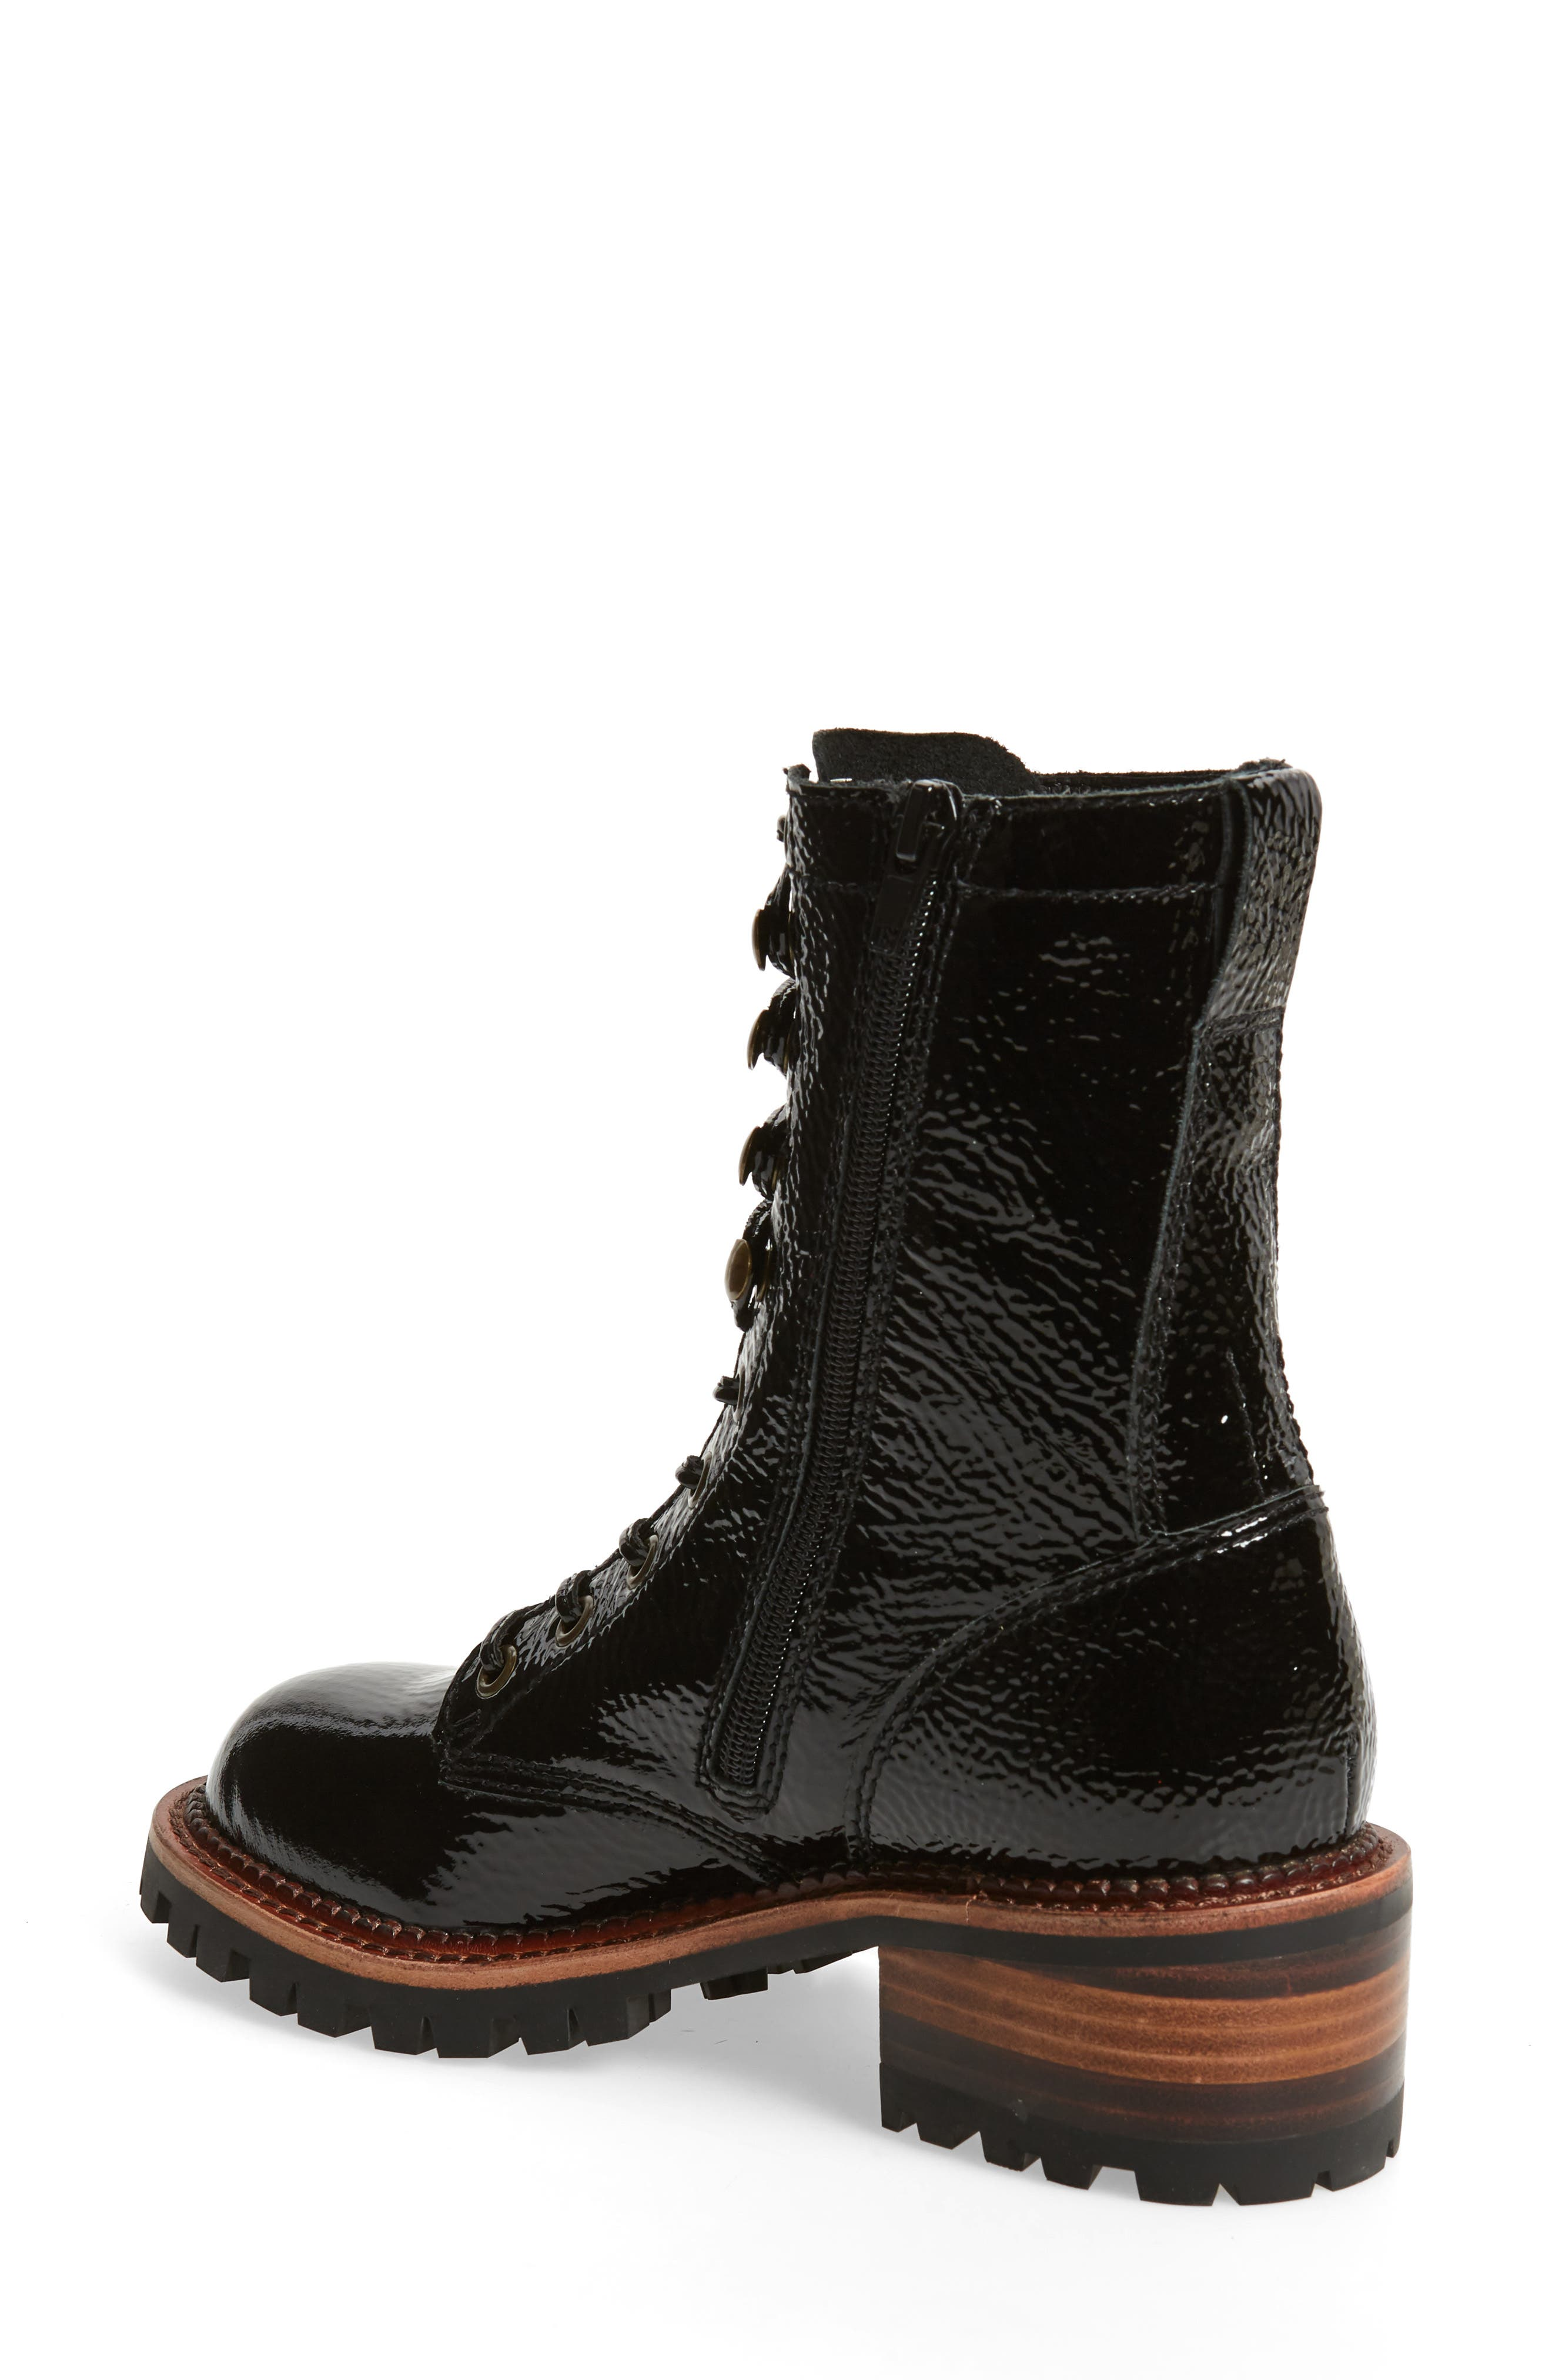 Sycamore Patent Leather Boot,                             Alternate thumbnail 2, color,                             BLACK CRINKLE PATENT LEATHER